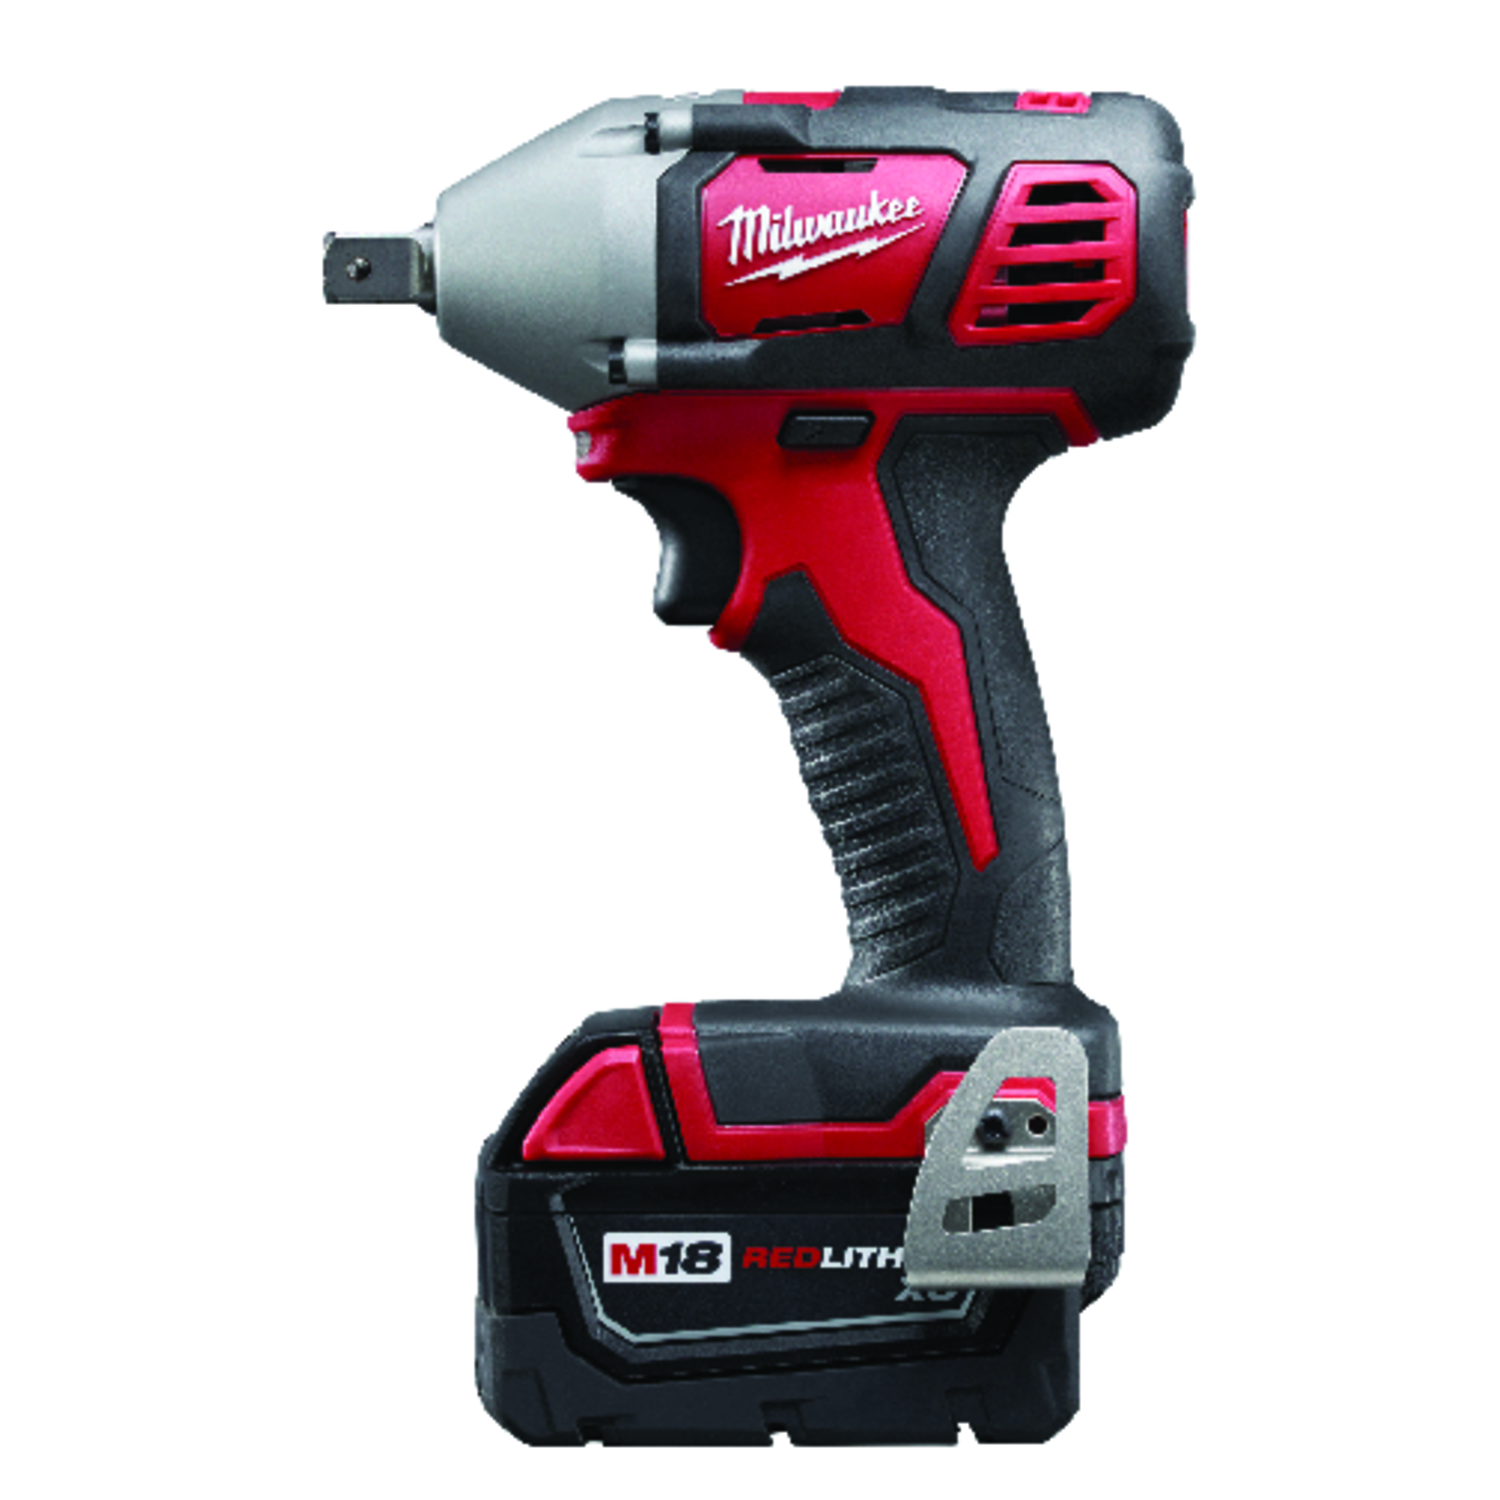 Milwaukee  M18  1/2 in. Square  Cordless  Pin Detent  Impact Wrench with Detent Pin Anvil  18 volt K